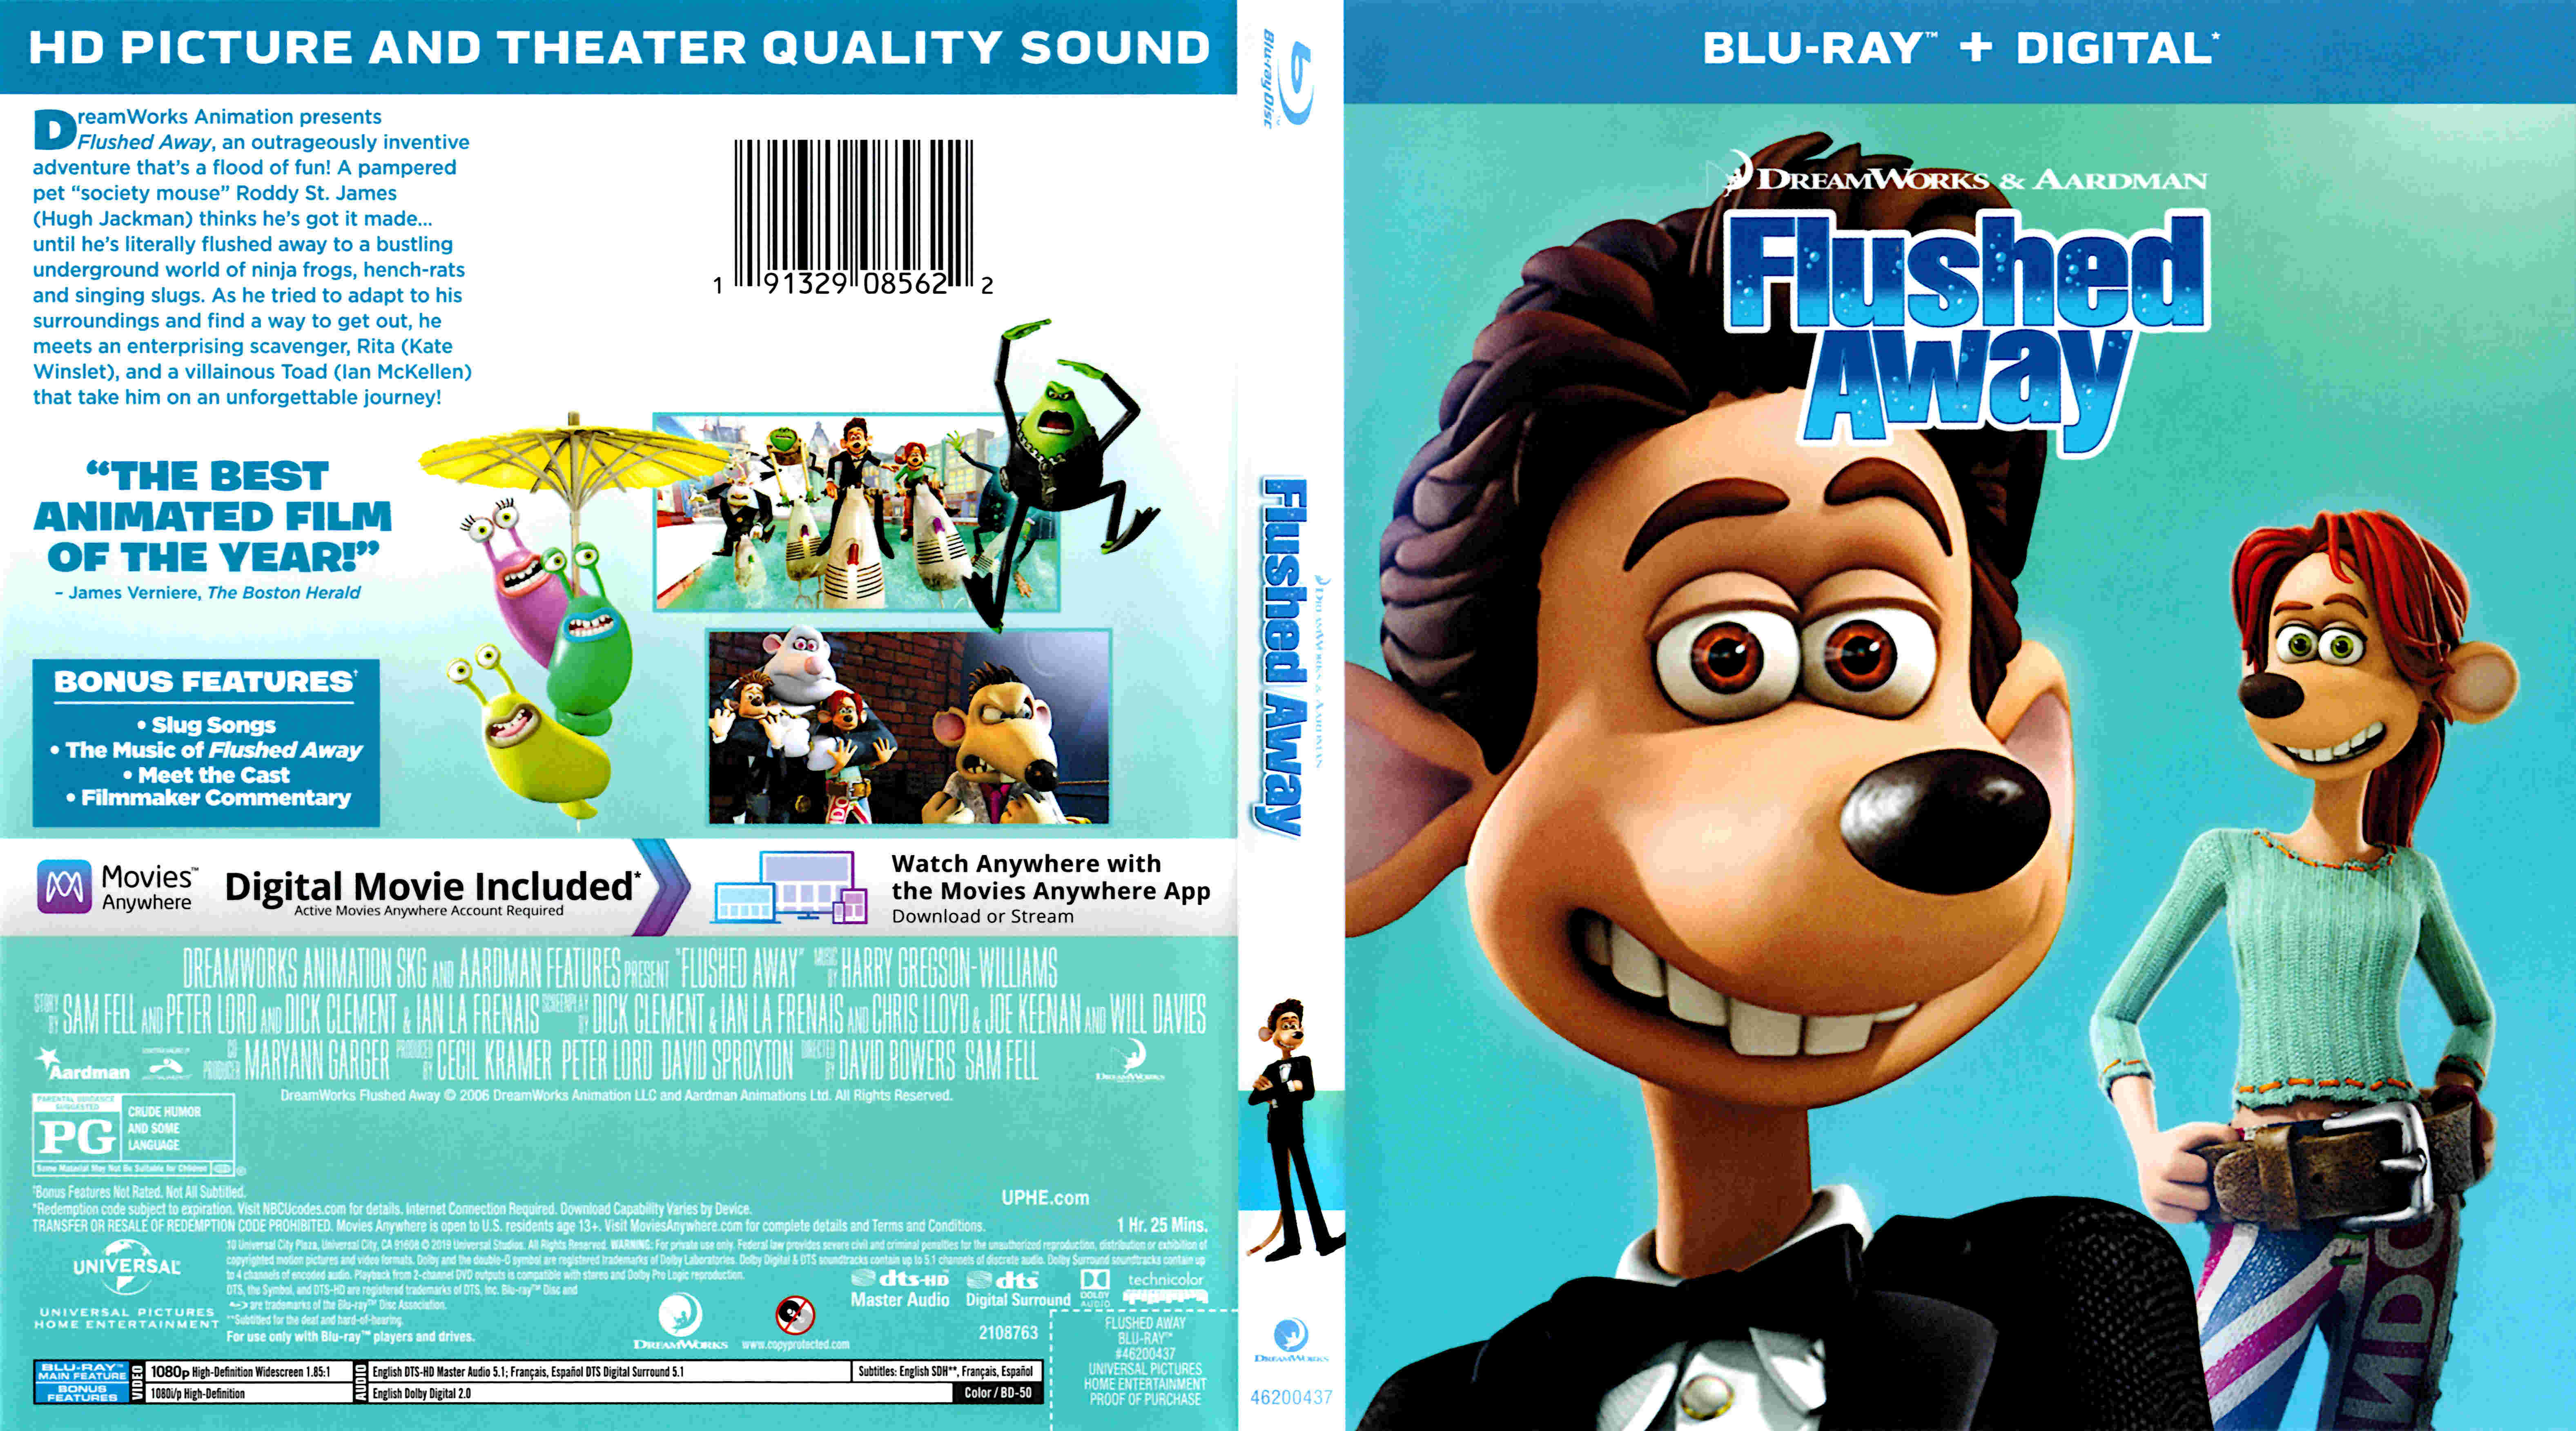 Flushed Away 2006 R1 Front Www Freecovers Net By Psycosid09 On Deviantart